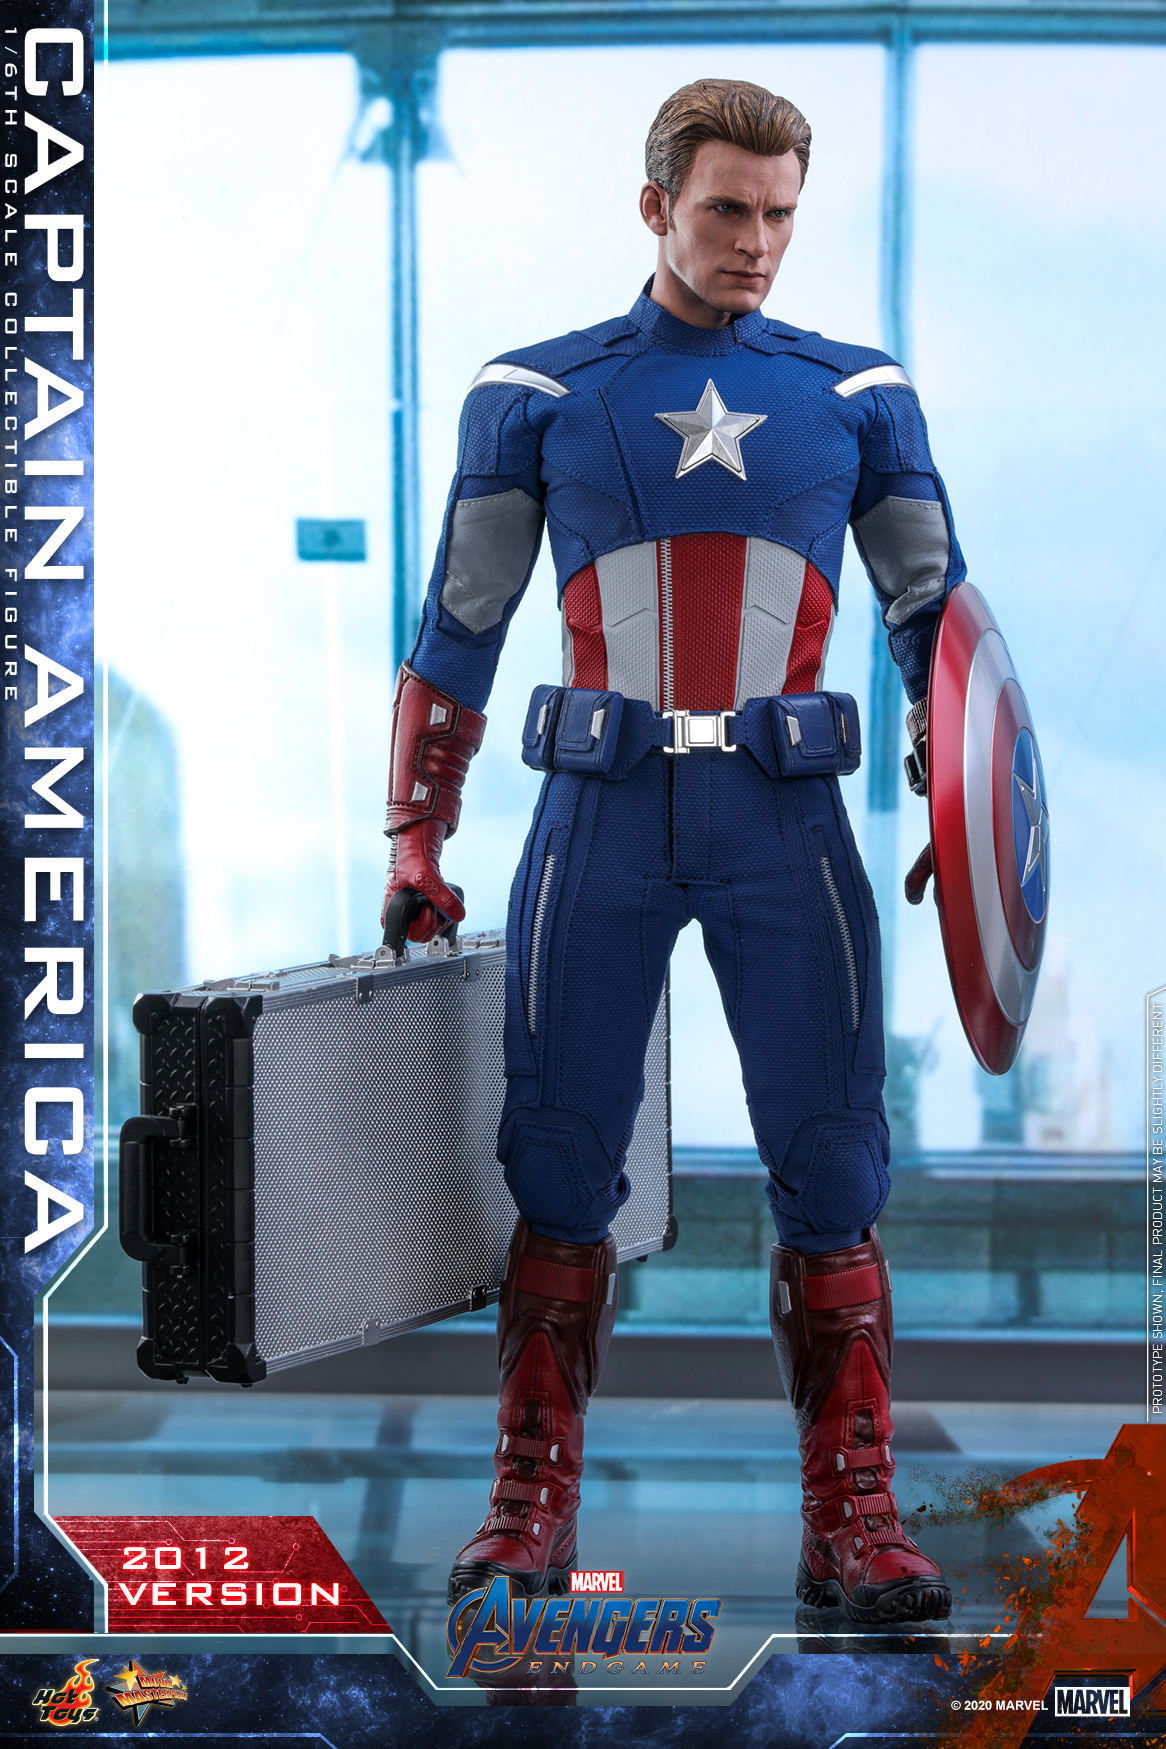 Hot Toys - A4 - Captain America (2012 Version) Collectible Figure_PR1